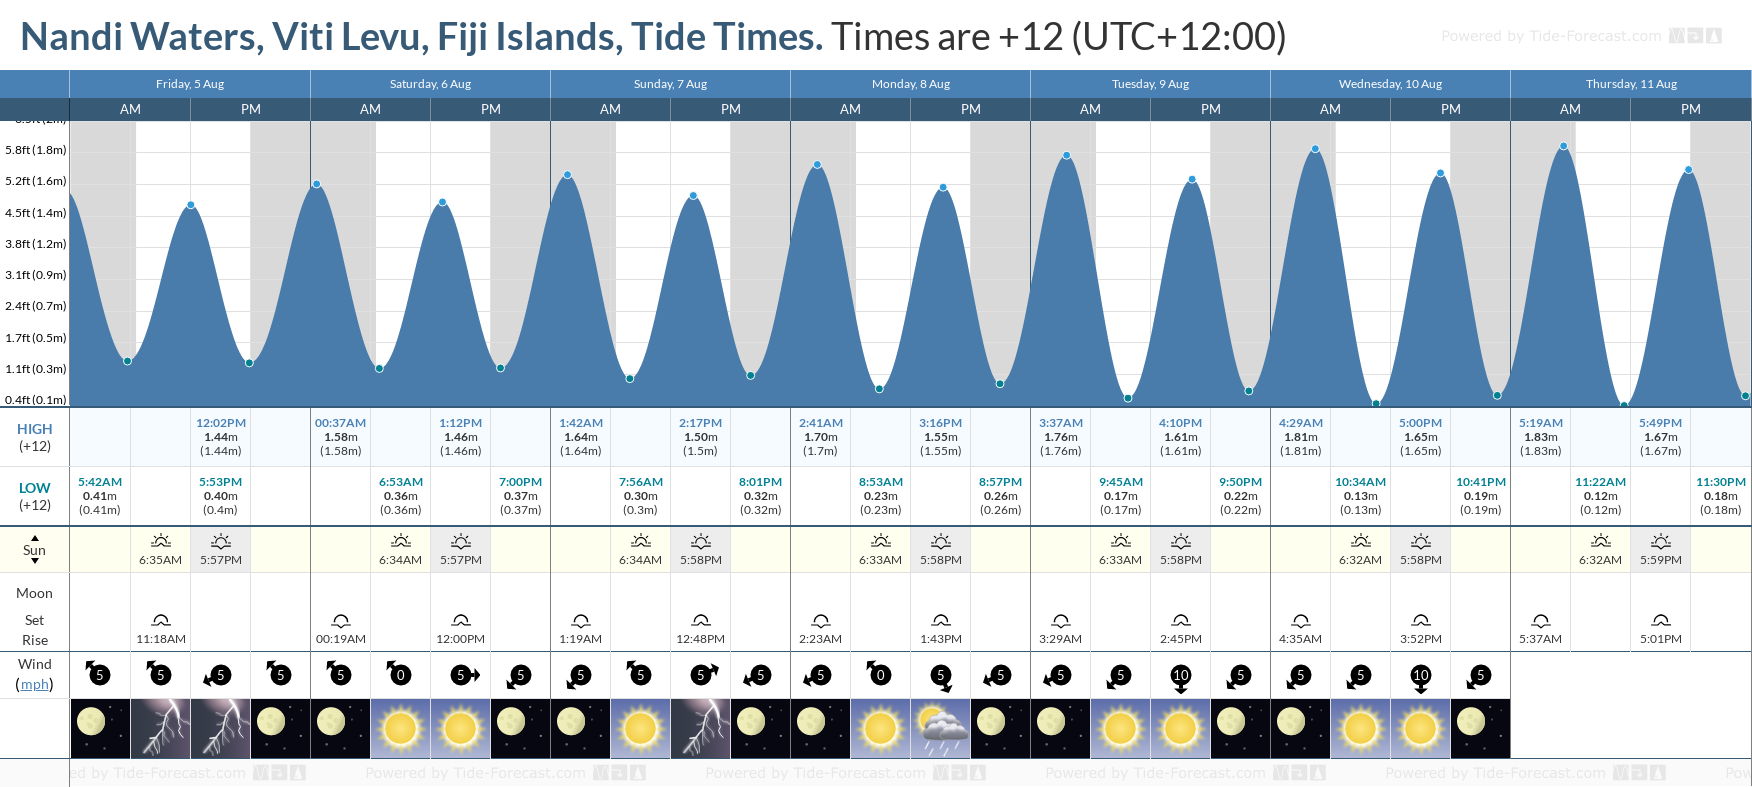 Nandi Waters, Viti Levu, Fiji Islands Tide Chart including high and low tide tide times for the next 7 days